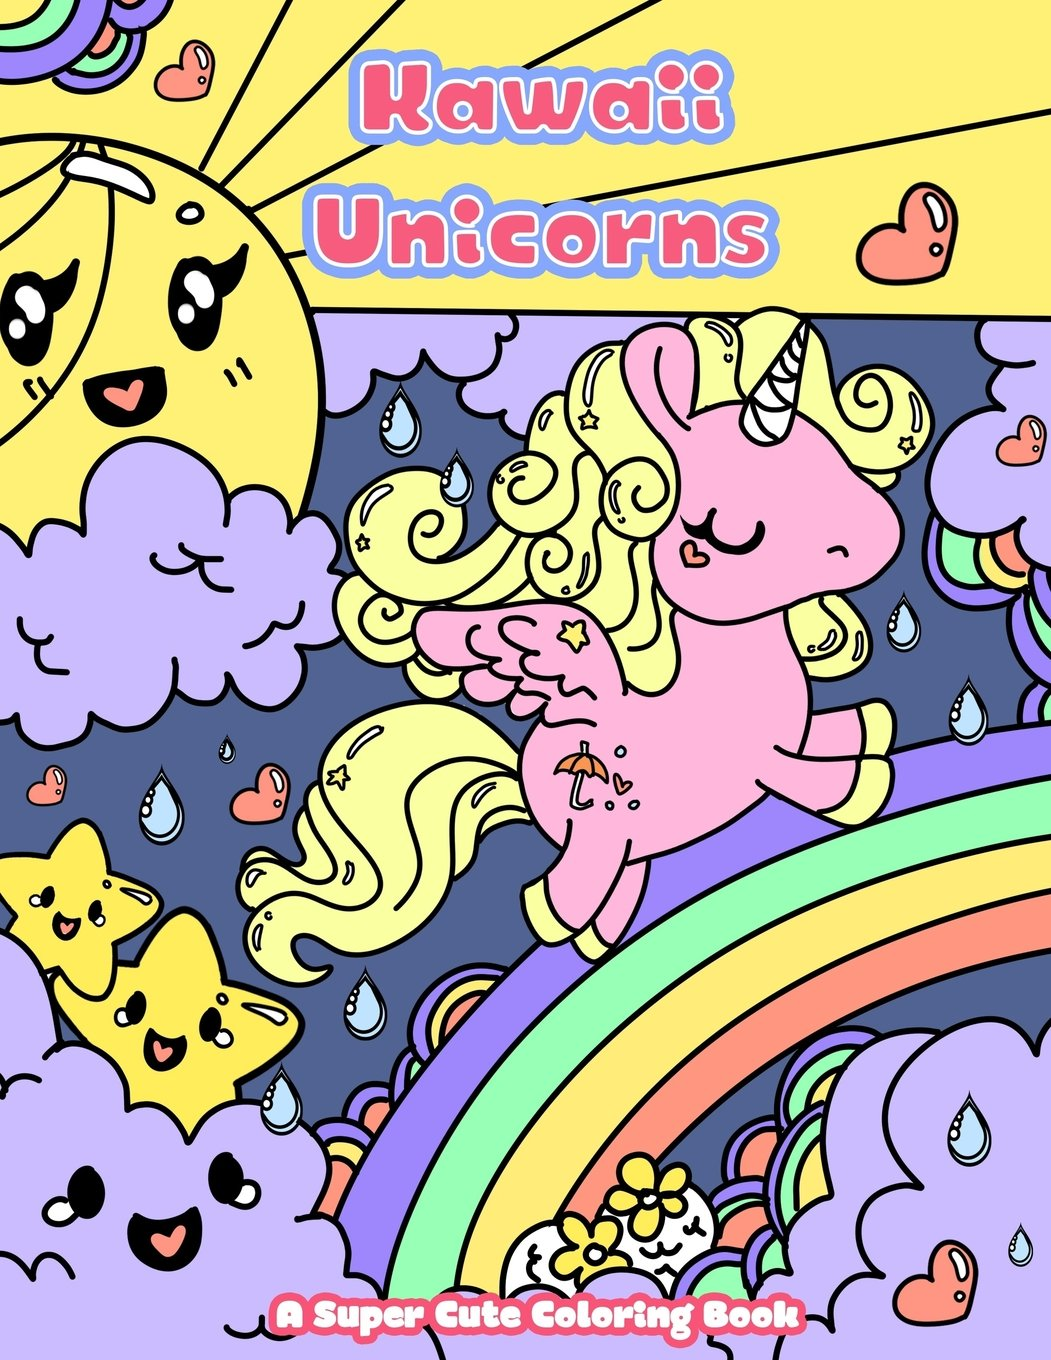 Amazon Com Kawaii Unicorns A Super Cute Coloring Book Kawaii